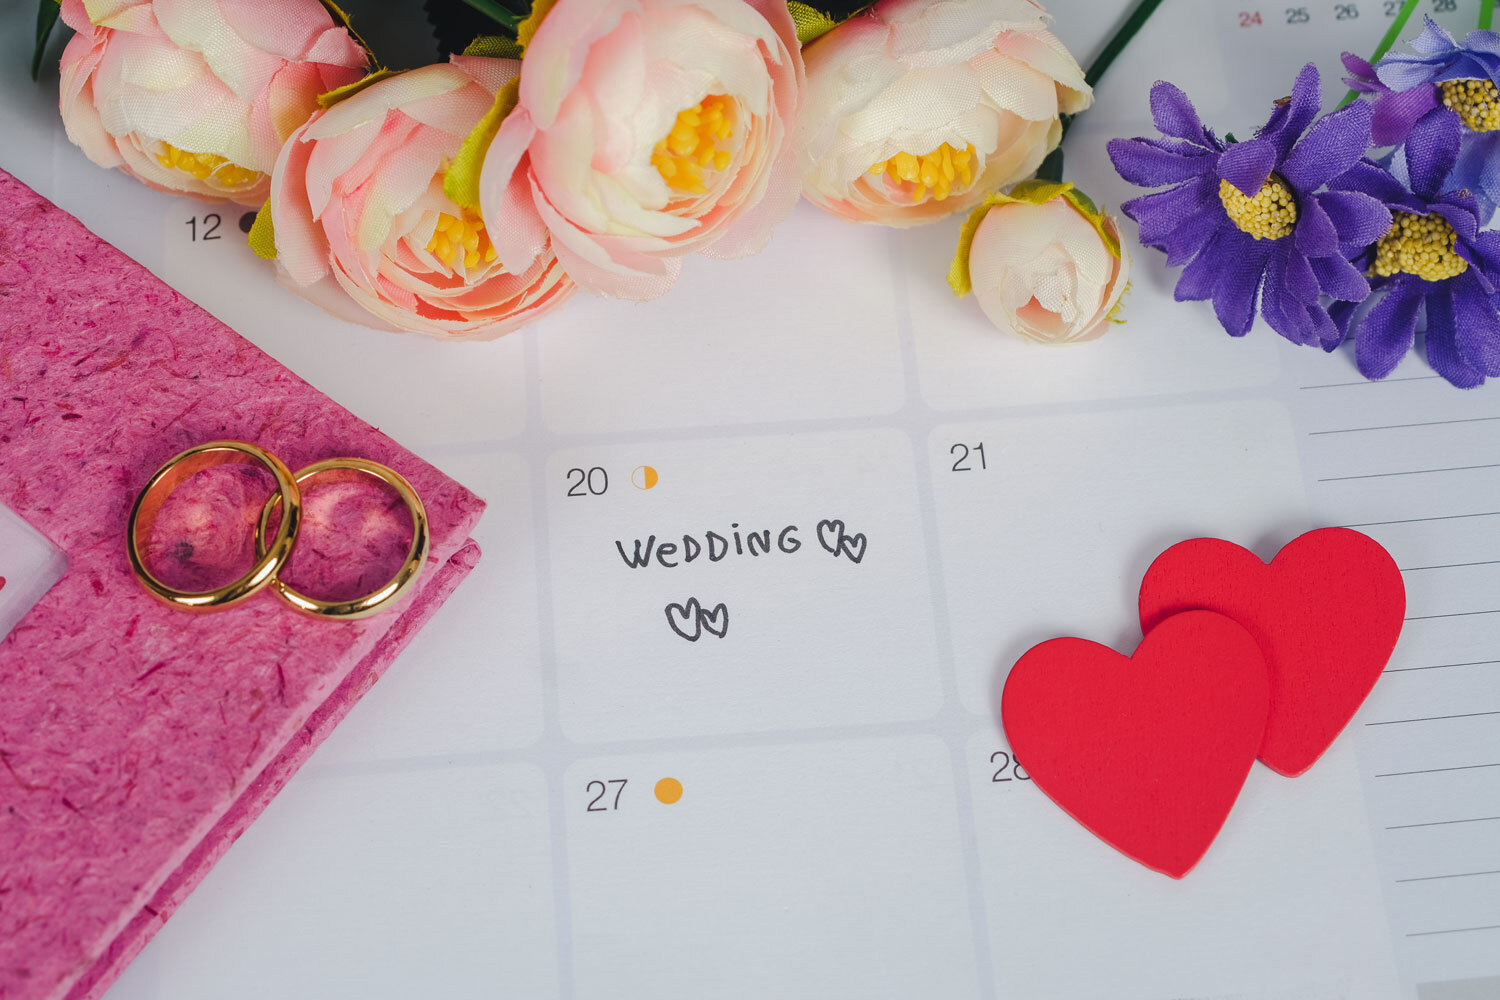 [Image description: a wedding calendar, with roses, hearts, and the rings] Via Unsplash